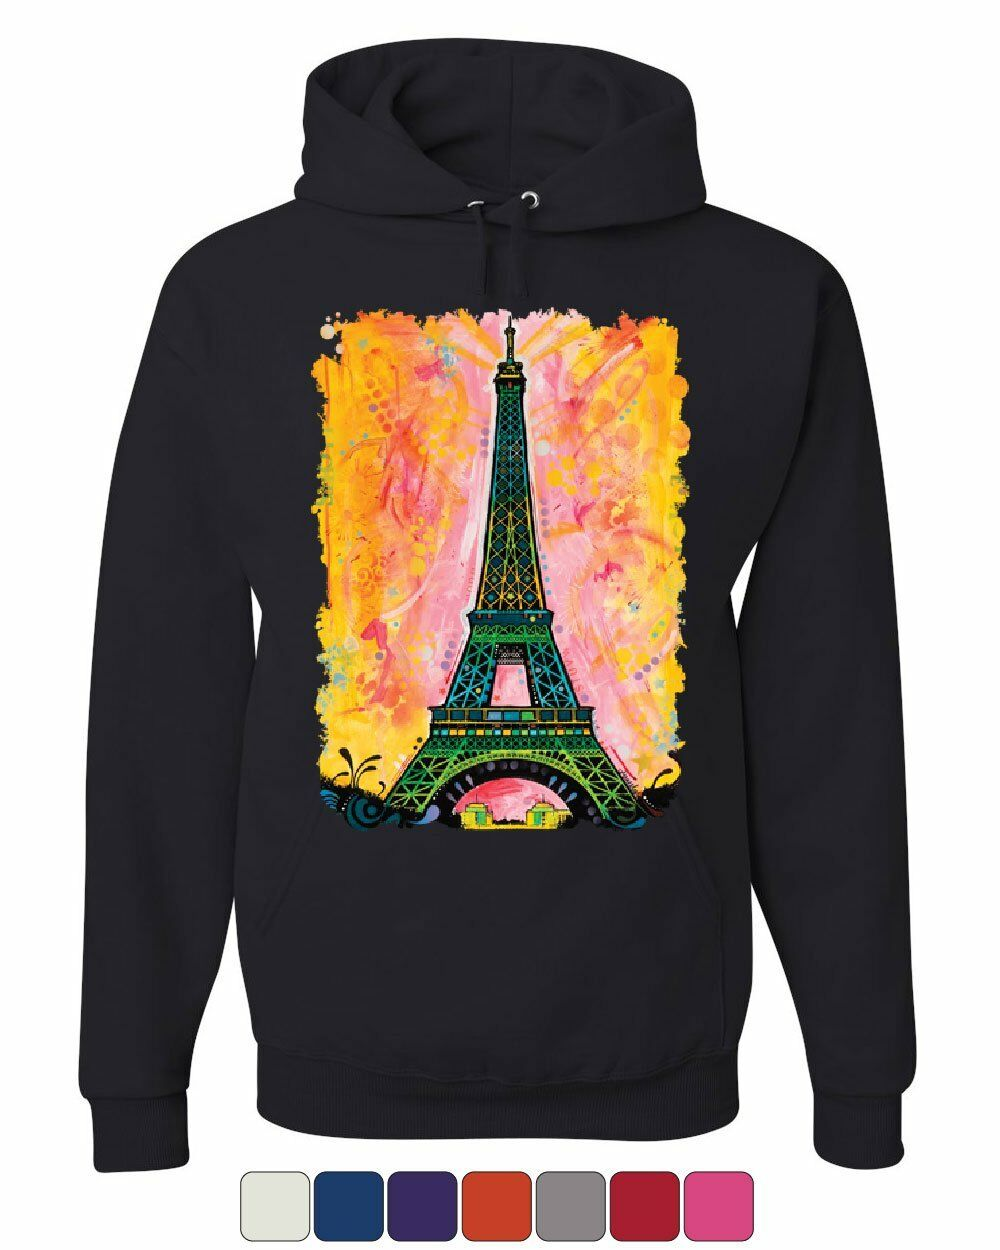 bfdbdd3b0b Eiffel Tower Hoodie Dean Russo Paris France Travel Europe EU Sweatshirt